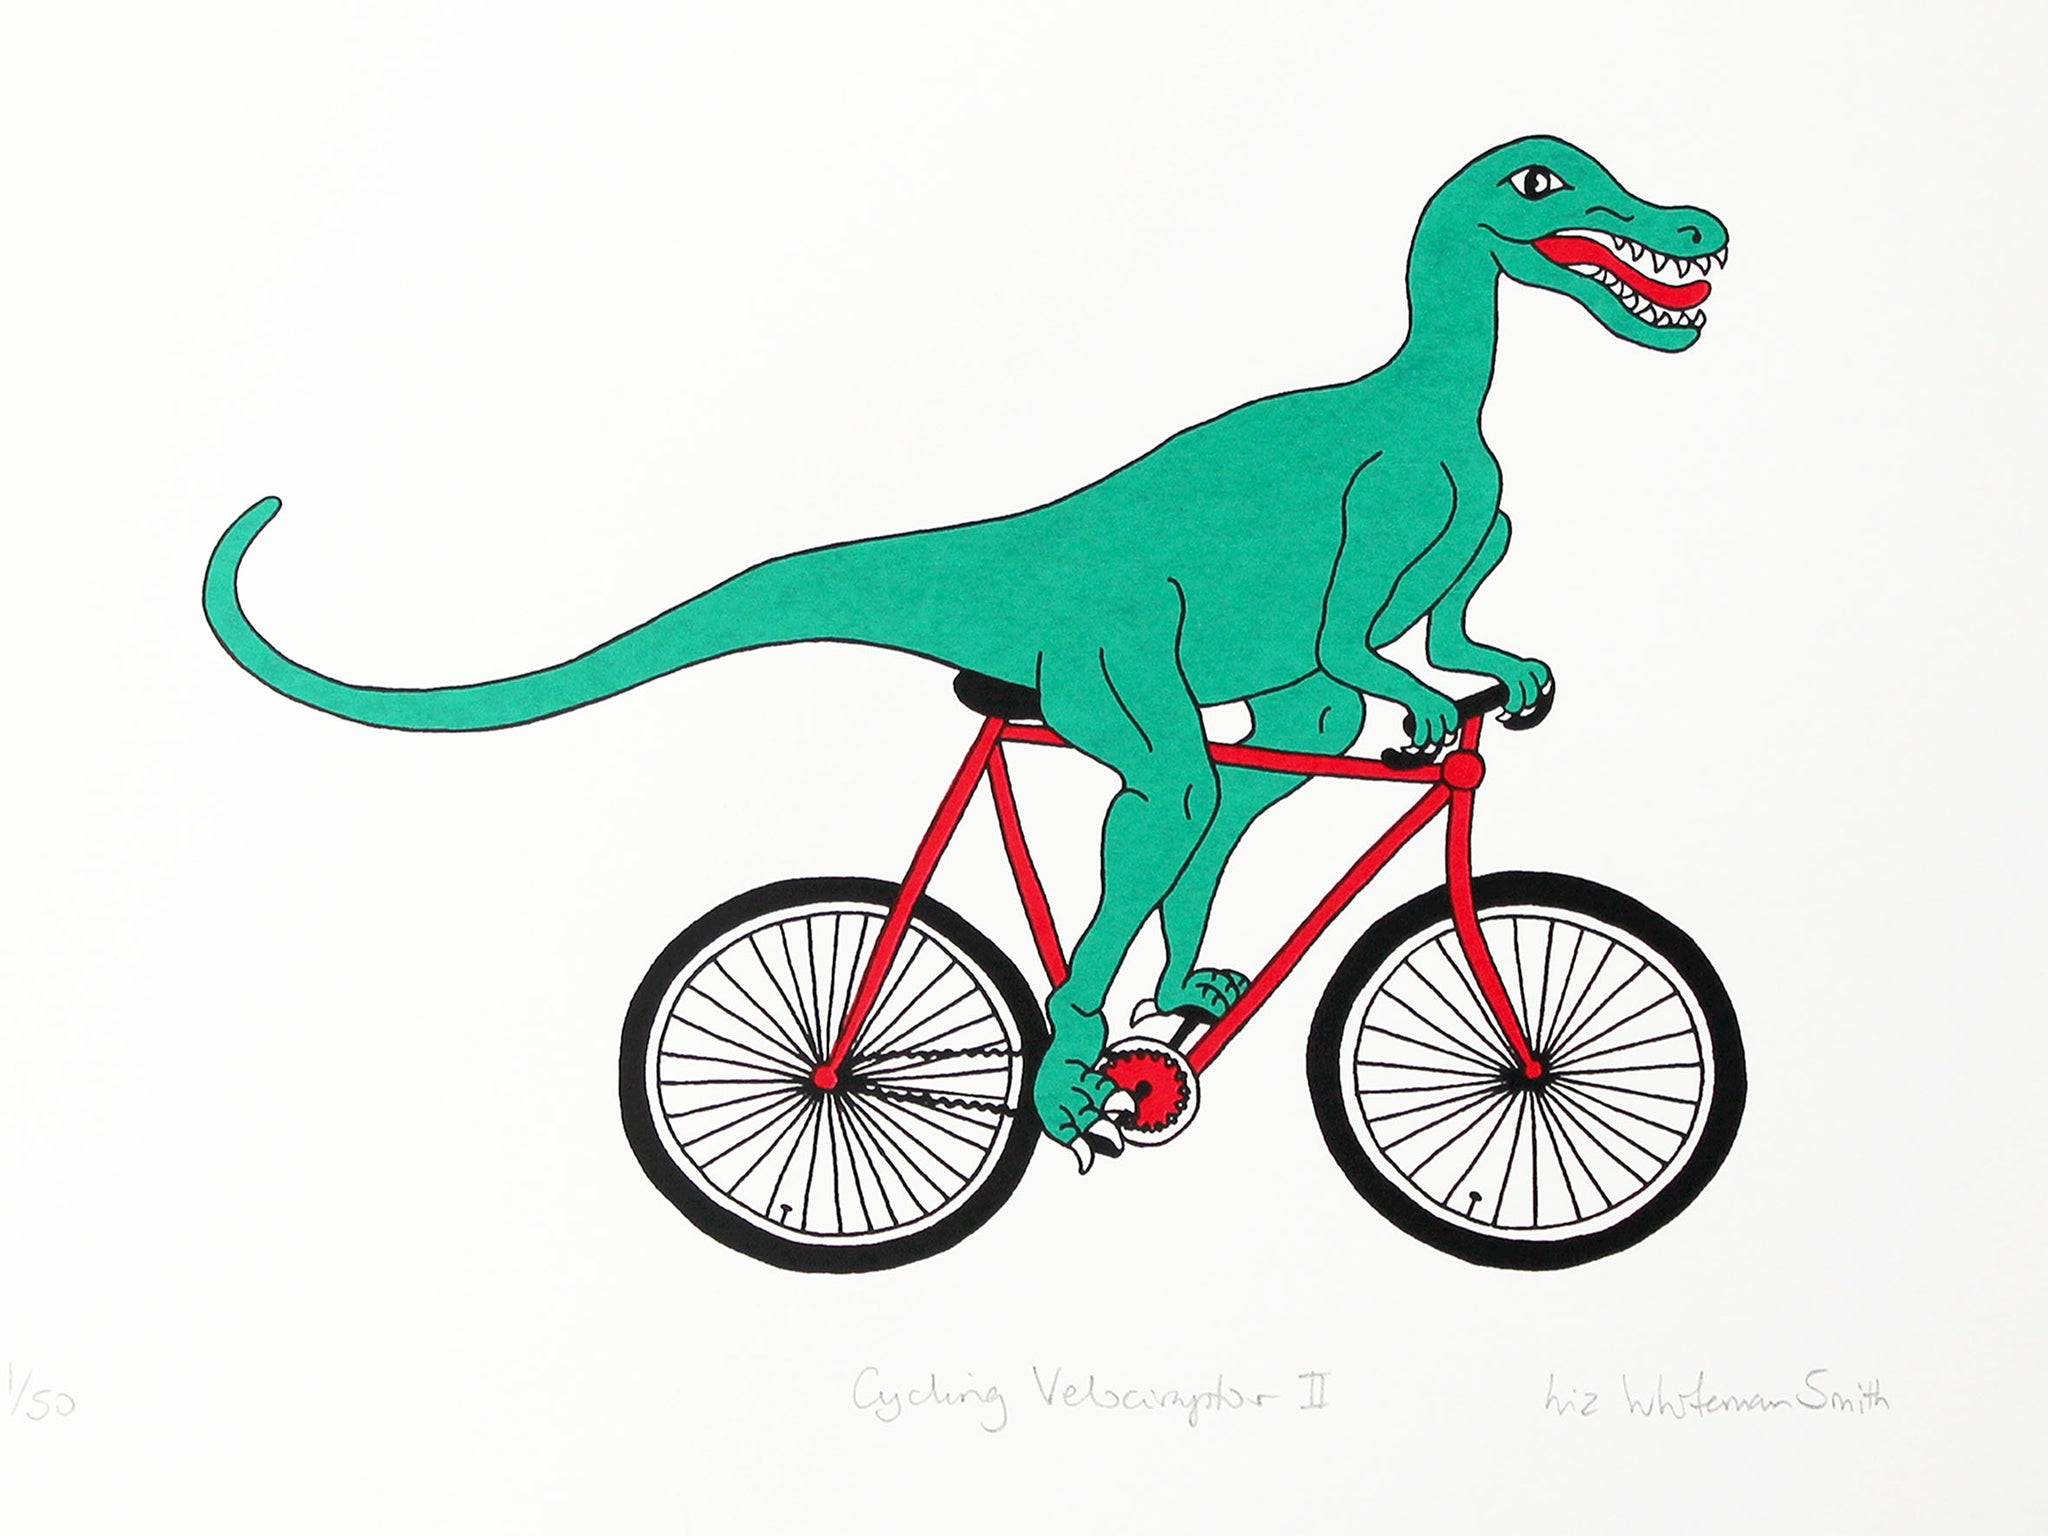 Green velociraptor cycling along happily on a red bicycle